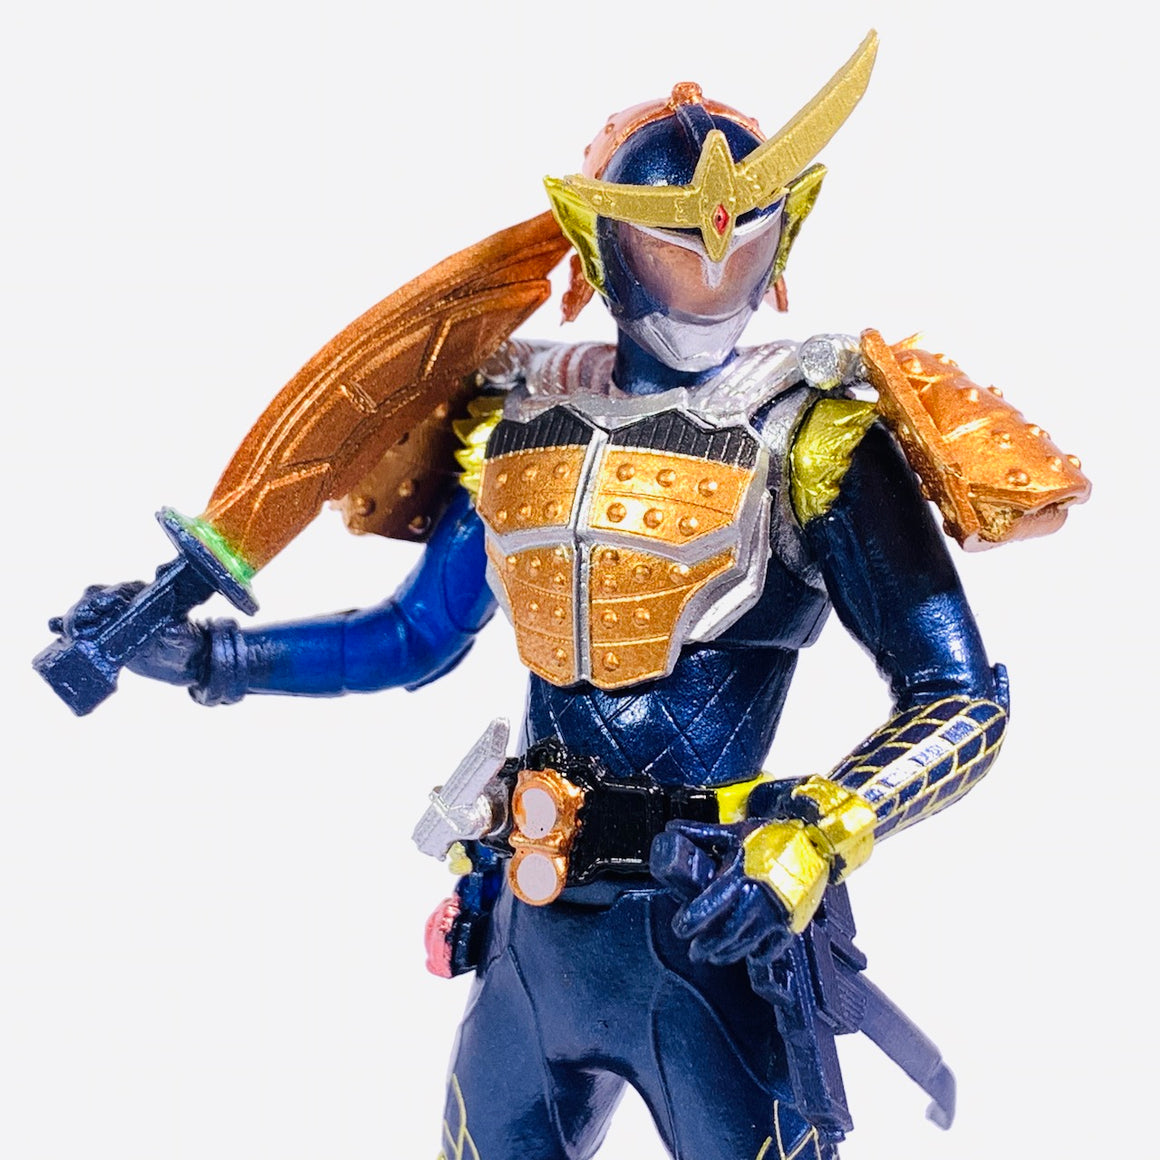 CSTOYS INTERNATIONAL:HG Kamen Rider NEW EDITION Vol.01 - 03. Kamen Rider Gaim